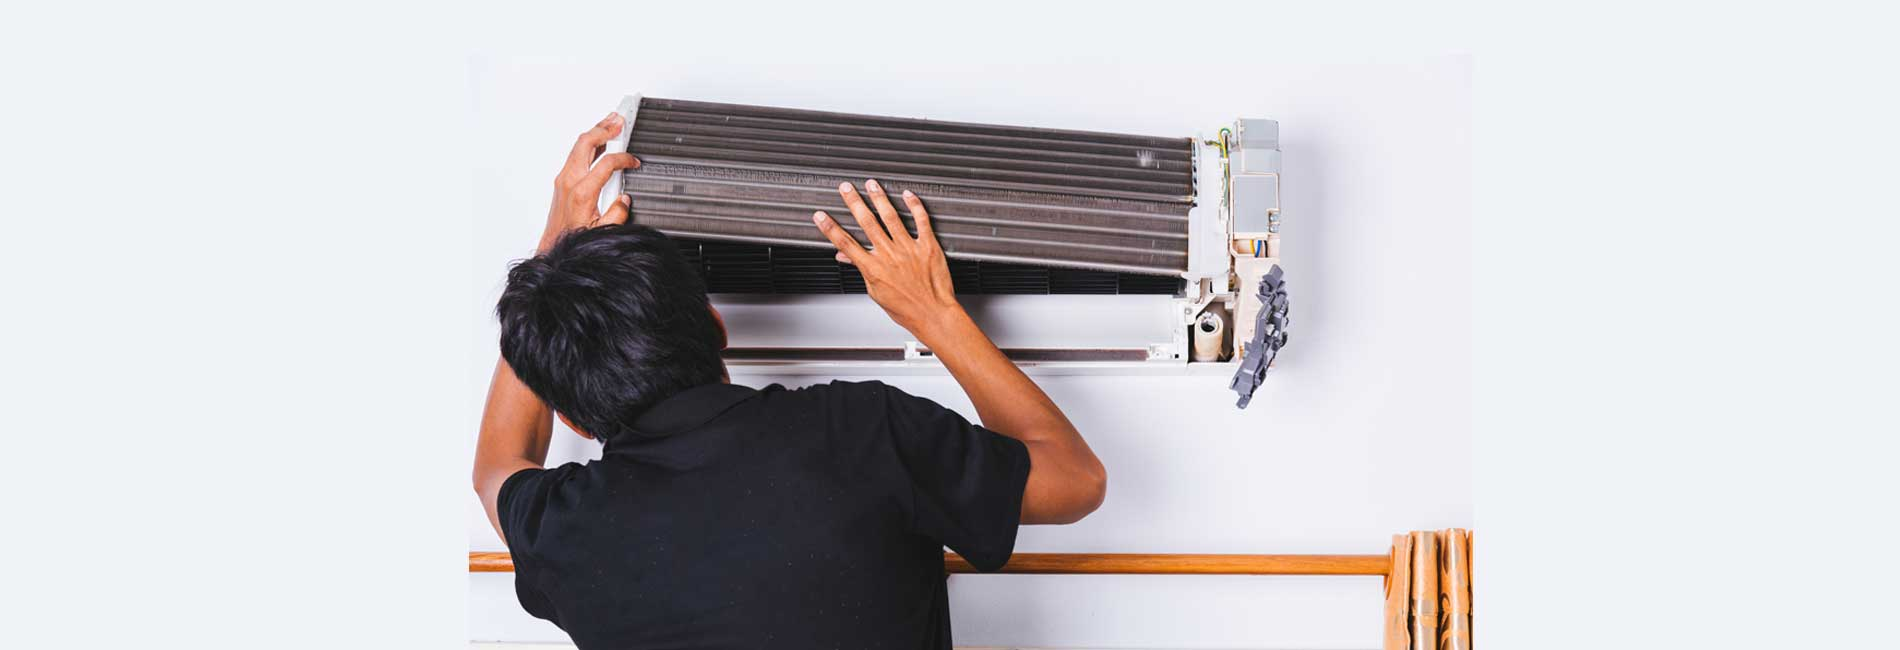 AC Installation in s.kolathur